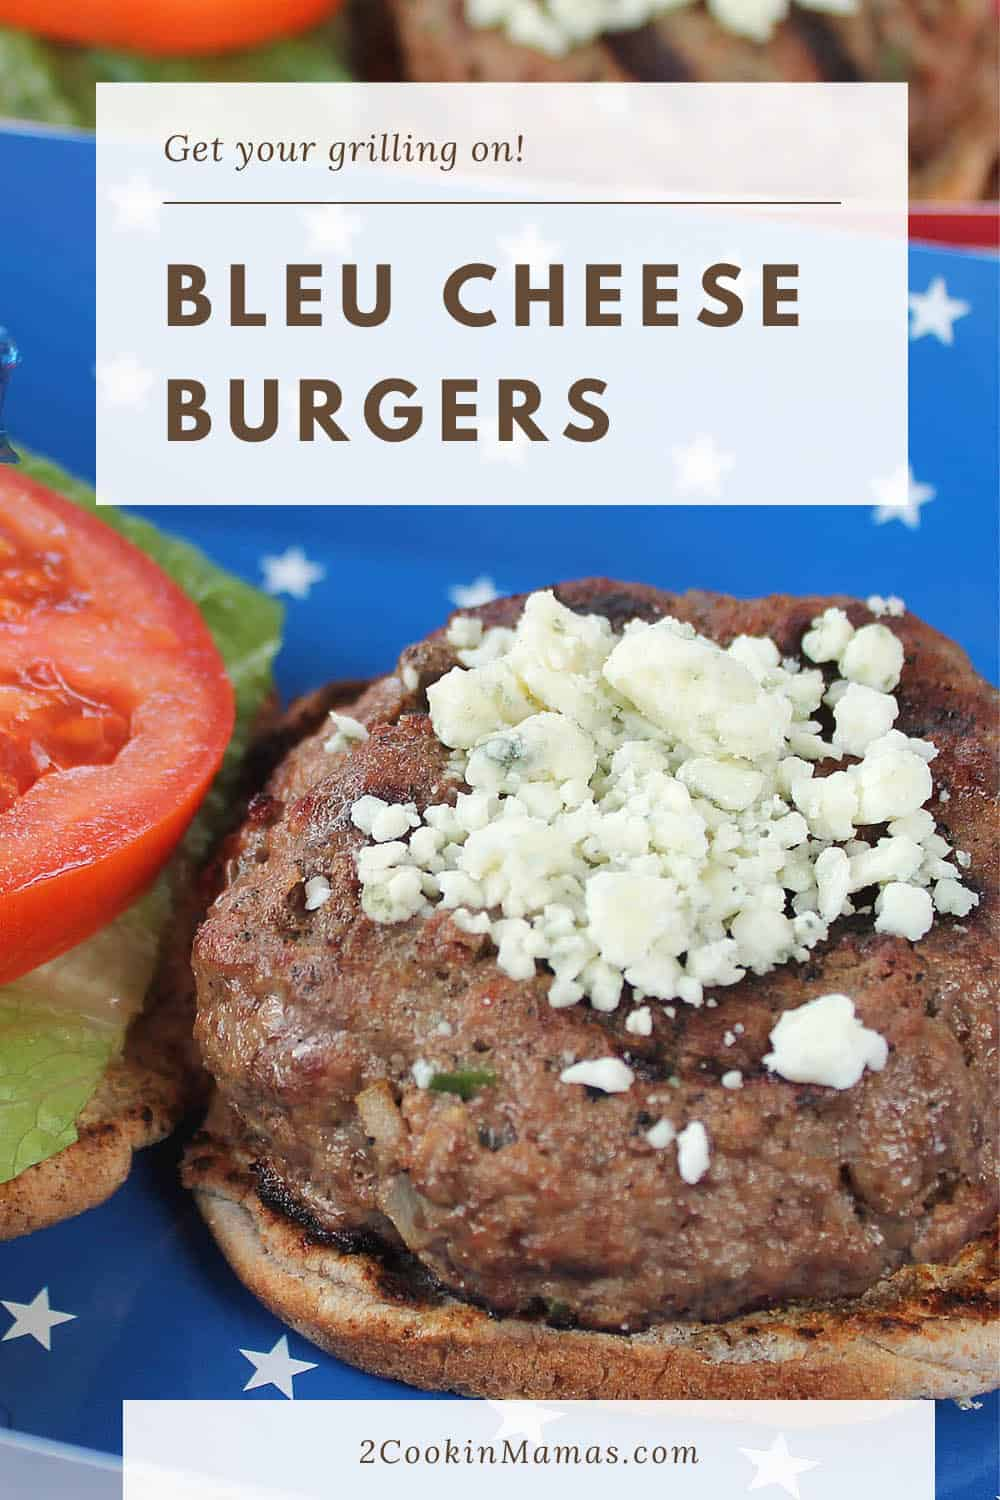 Red White and Bleu Burgers or Bleu Cheese Burgers